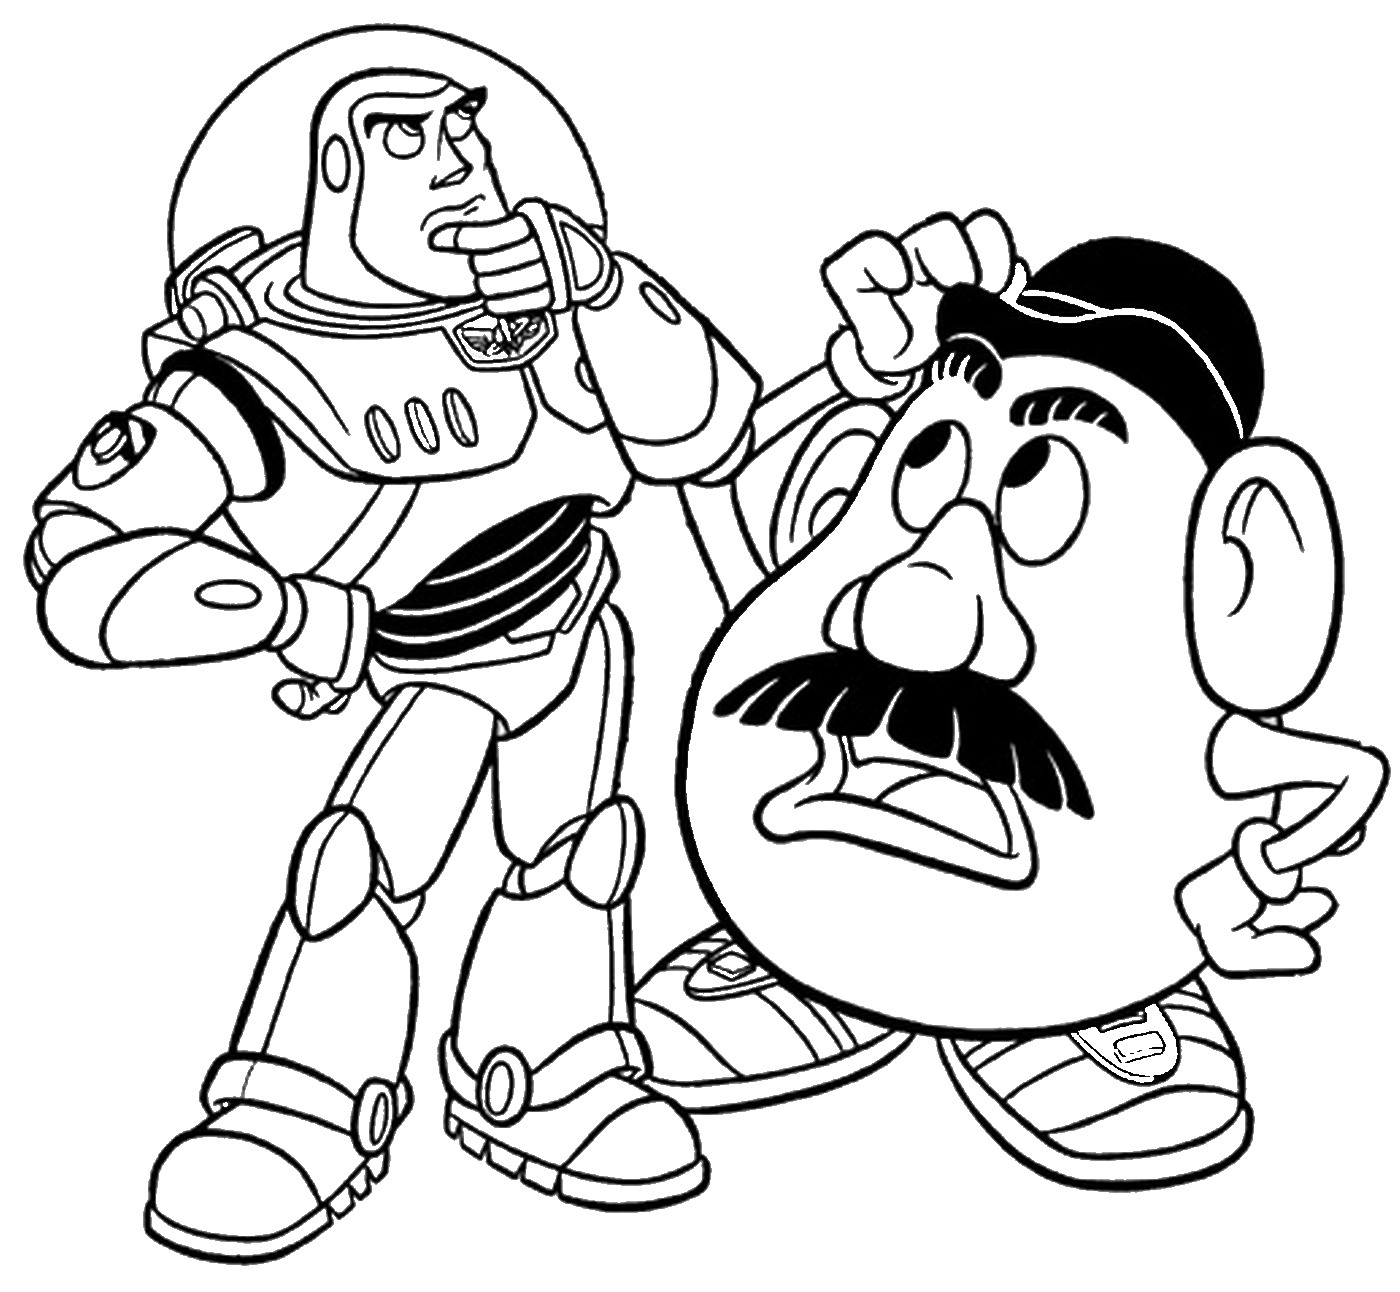 coloring pages disney toy story disney toy story mr prinklepants coloring pages 2020 disney coloring pages toy story